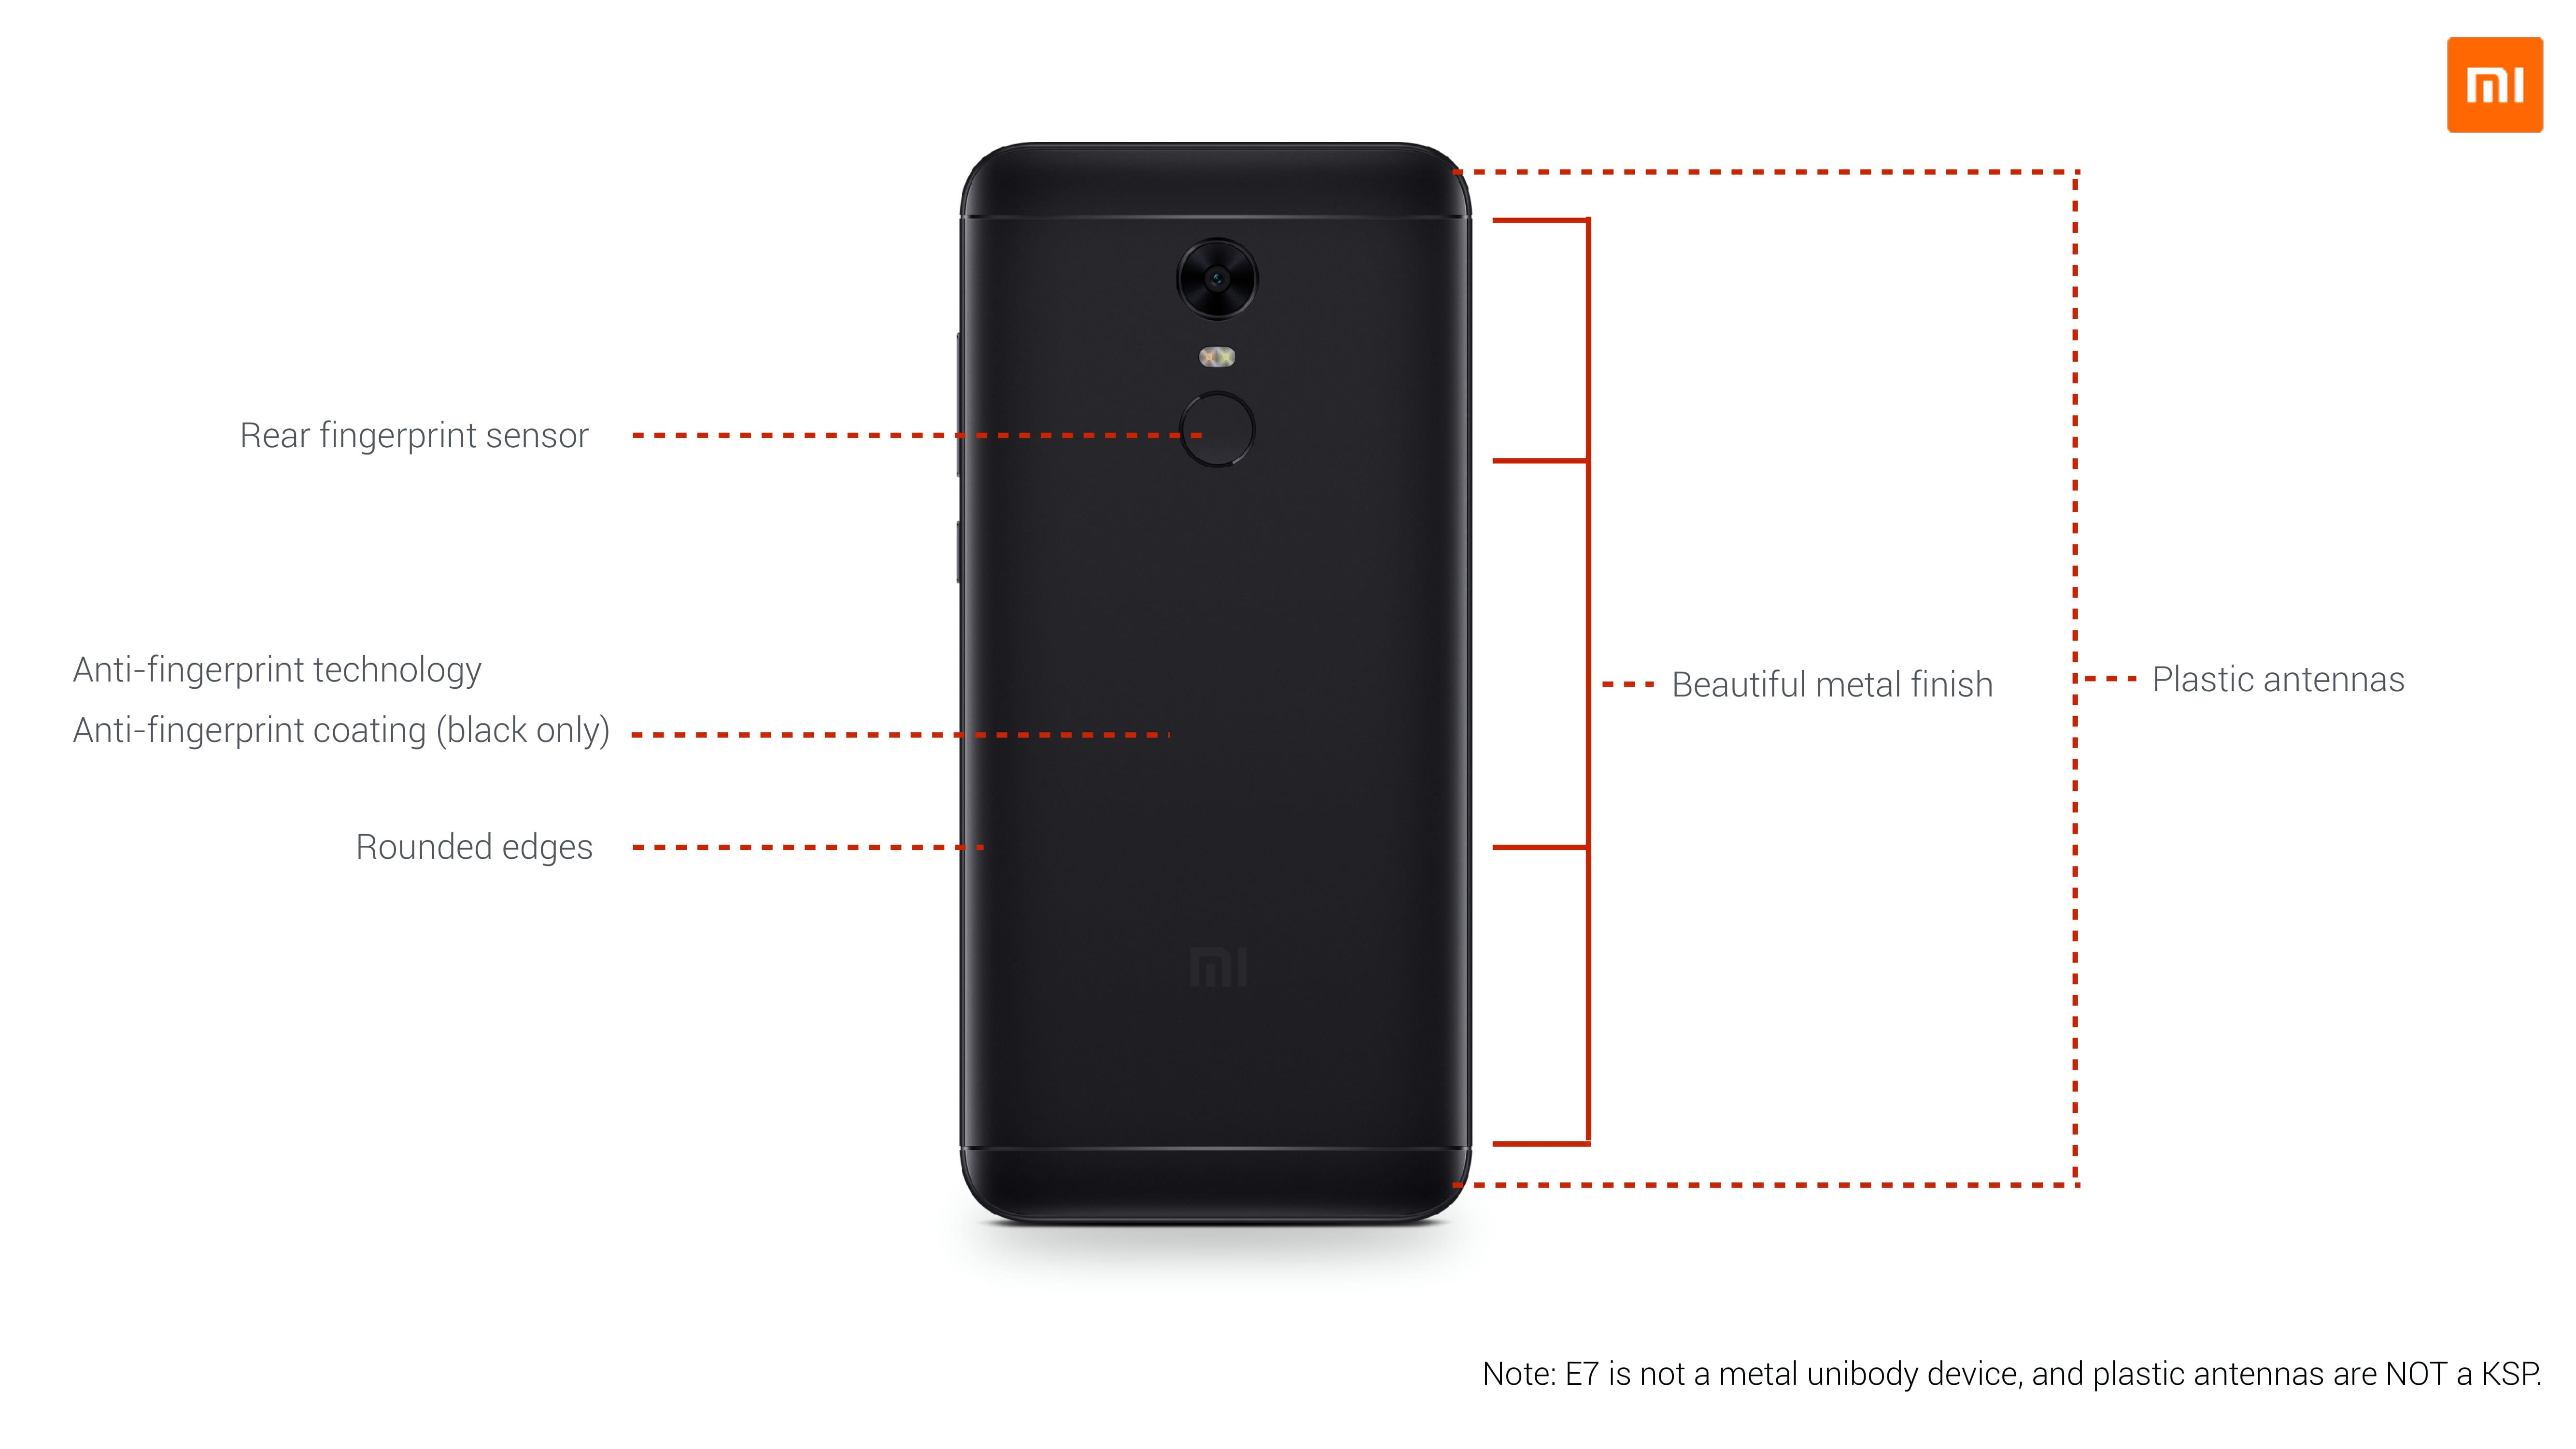 Redmi-5-Plus---Global-Product-Messaging-Guidelines-07.jpg